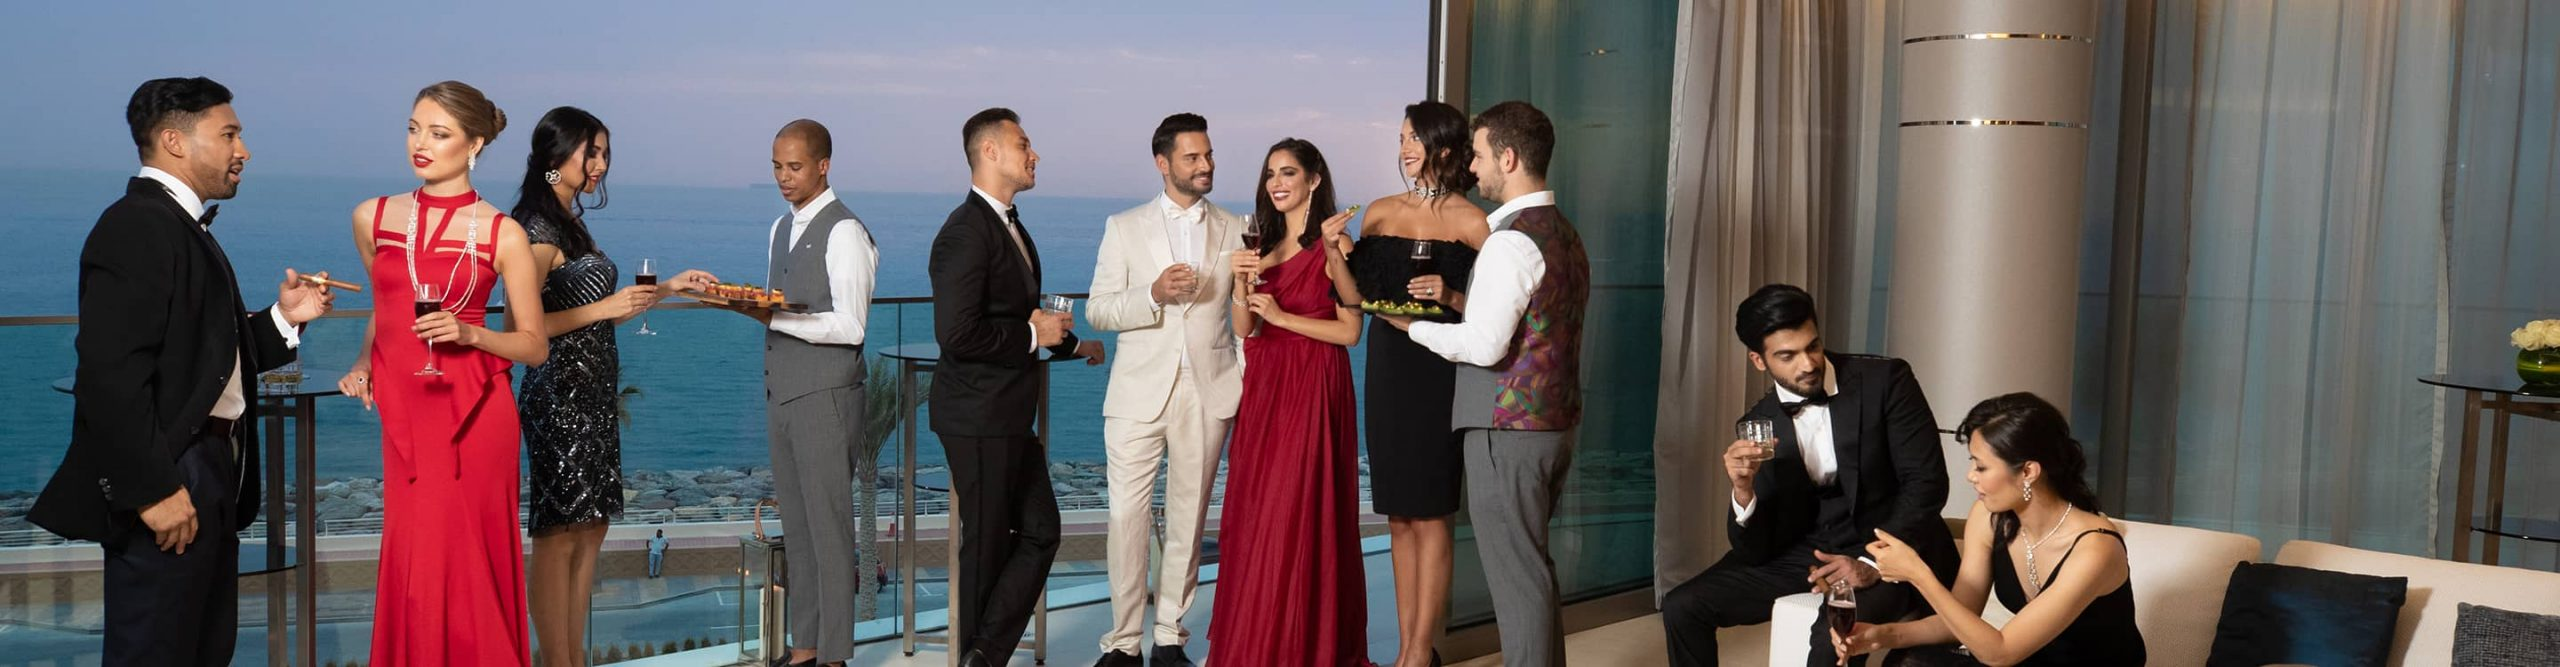 A party being held in the luxurious interior of a penthouse apartment in Dubai